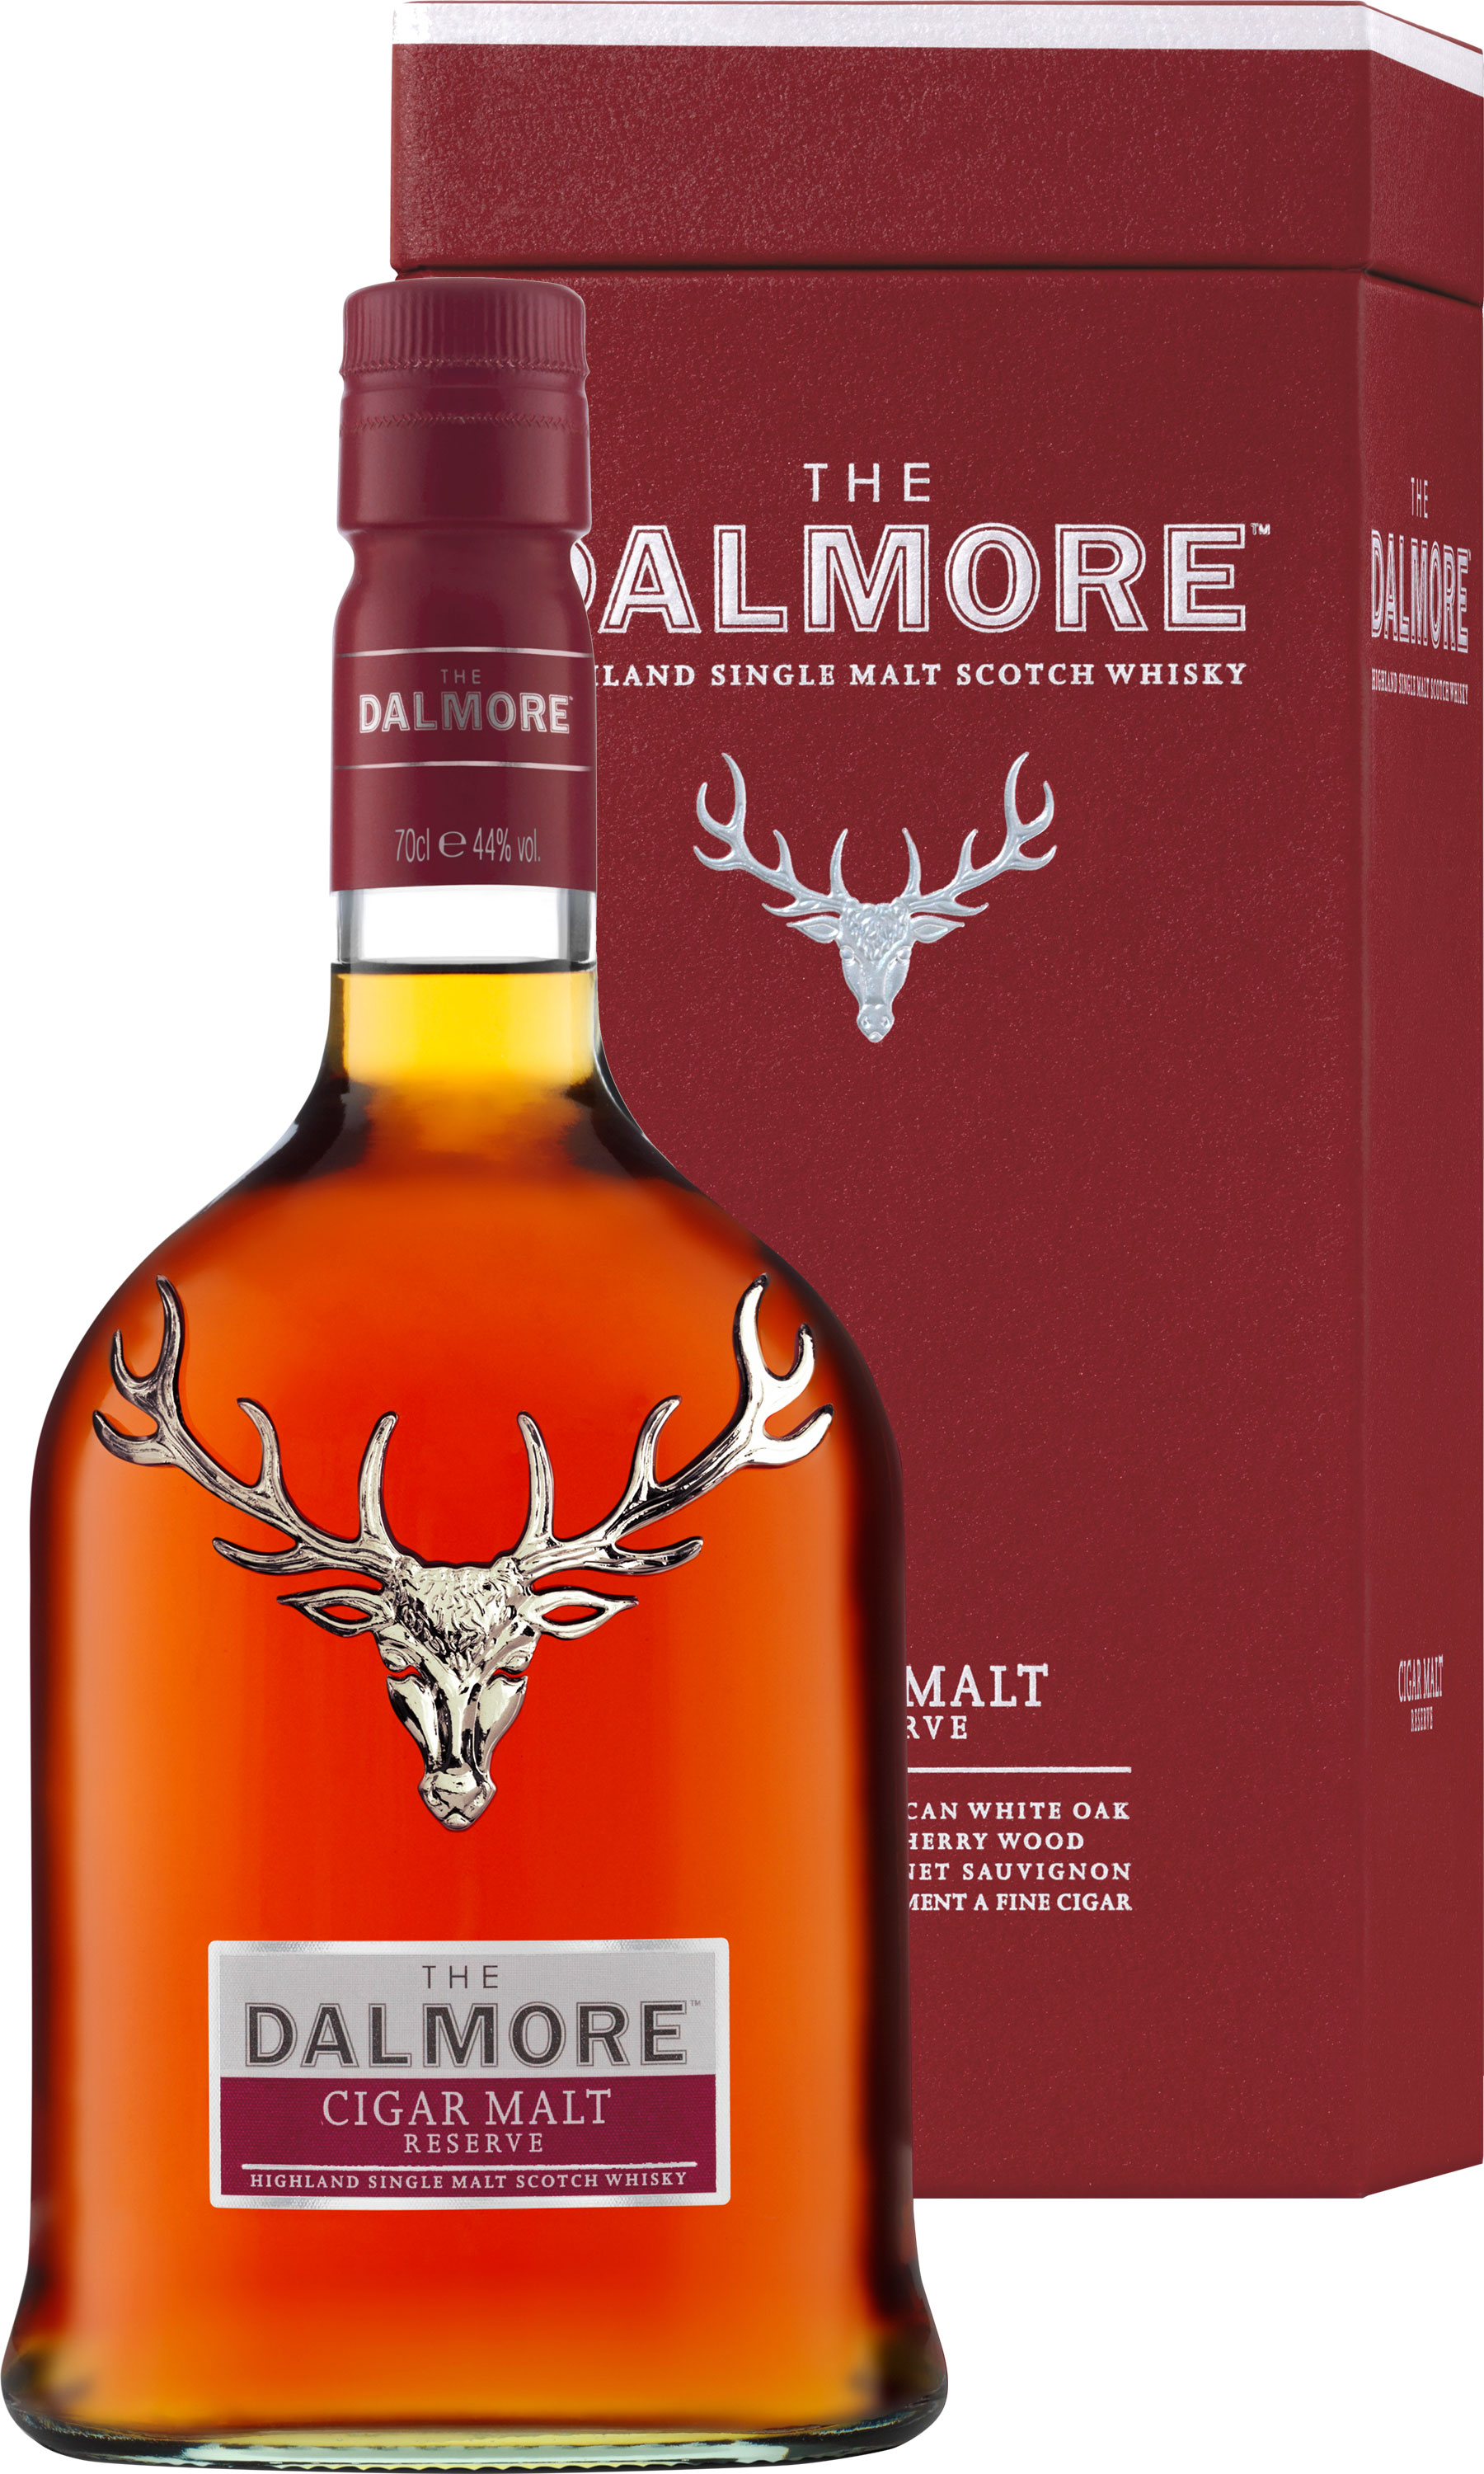 Dalmore - Cigar Malt 70cl Bottle